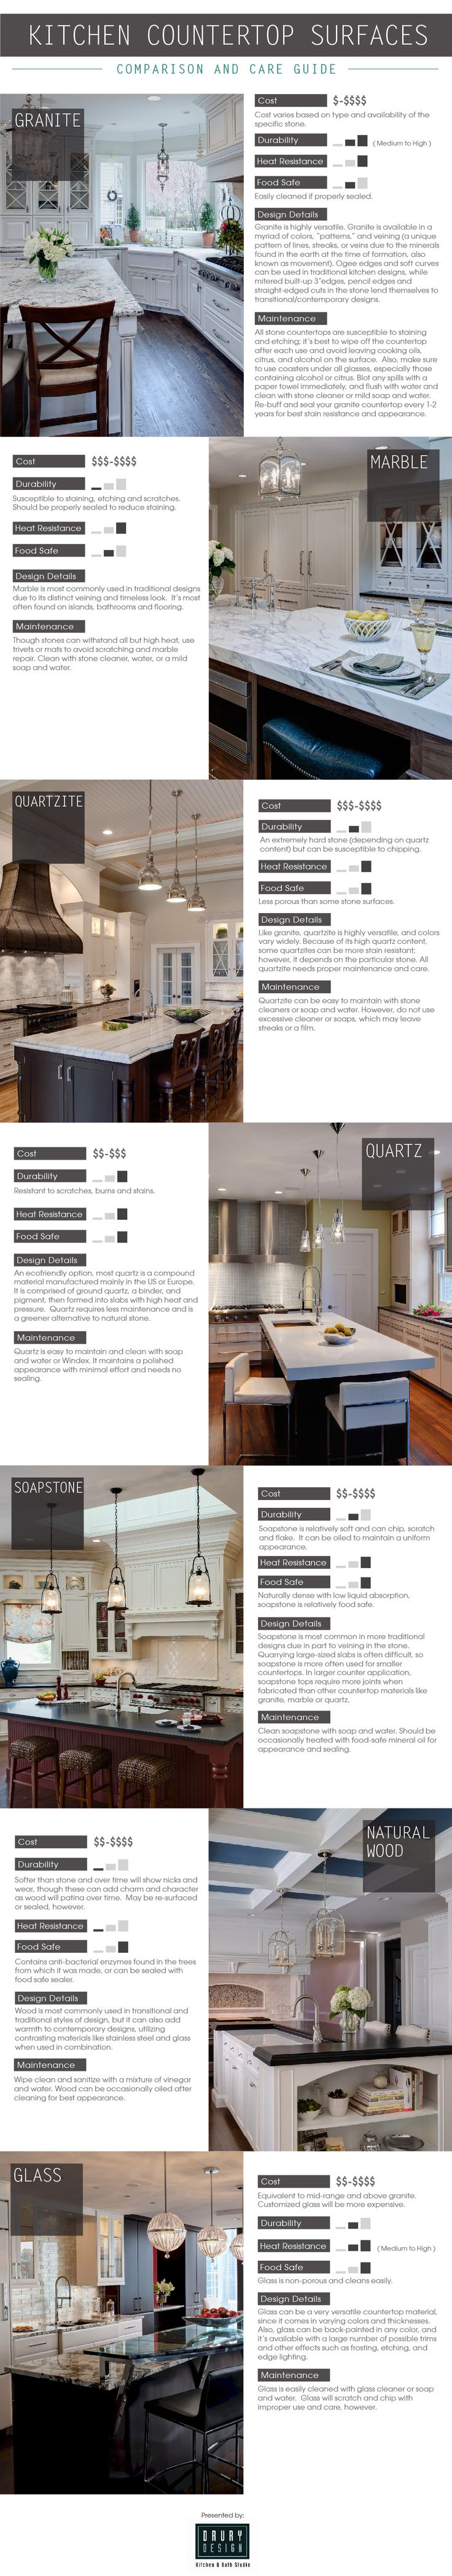 Choosing the Perfect Kitchen Countertop for your home | construction2style